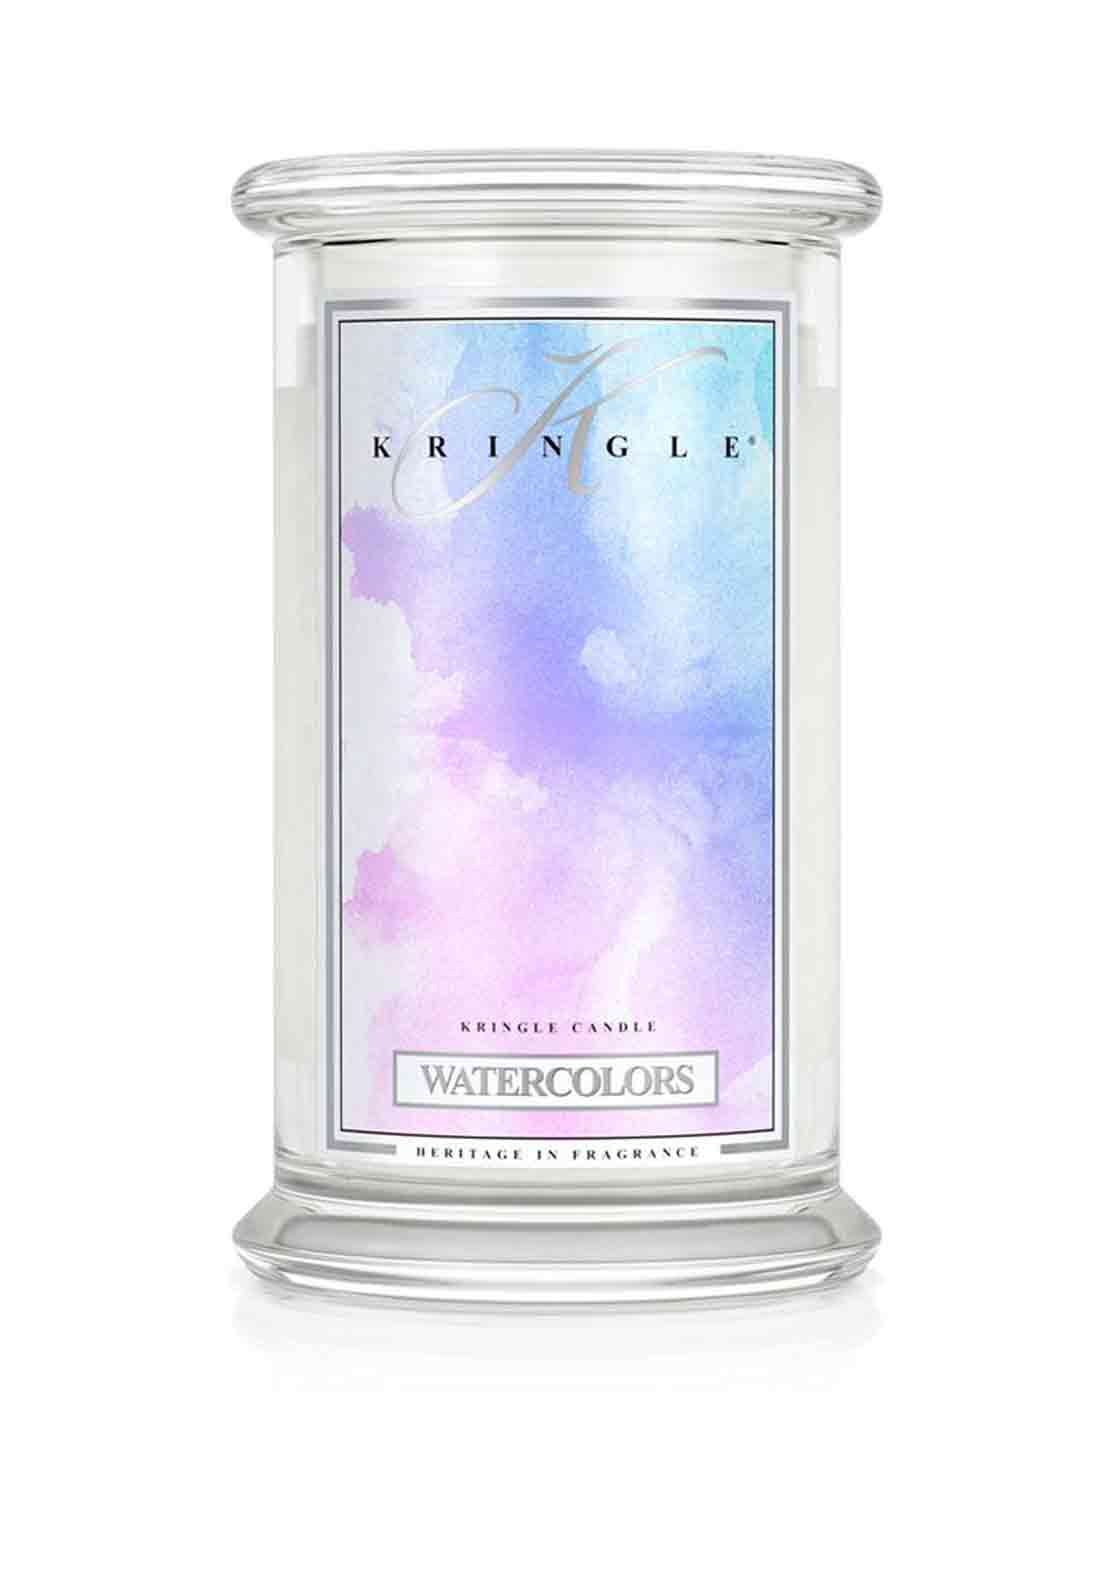 Kringle Candle Watercolours Large Two Wick Scented Candle Jar